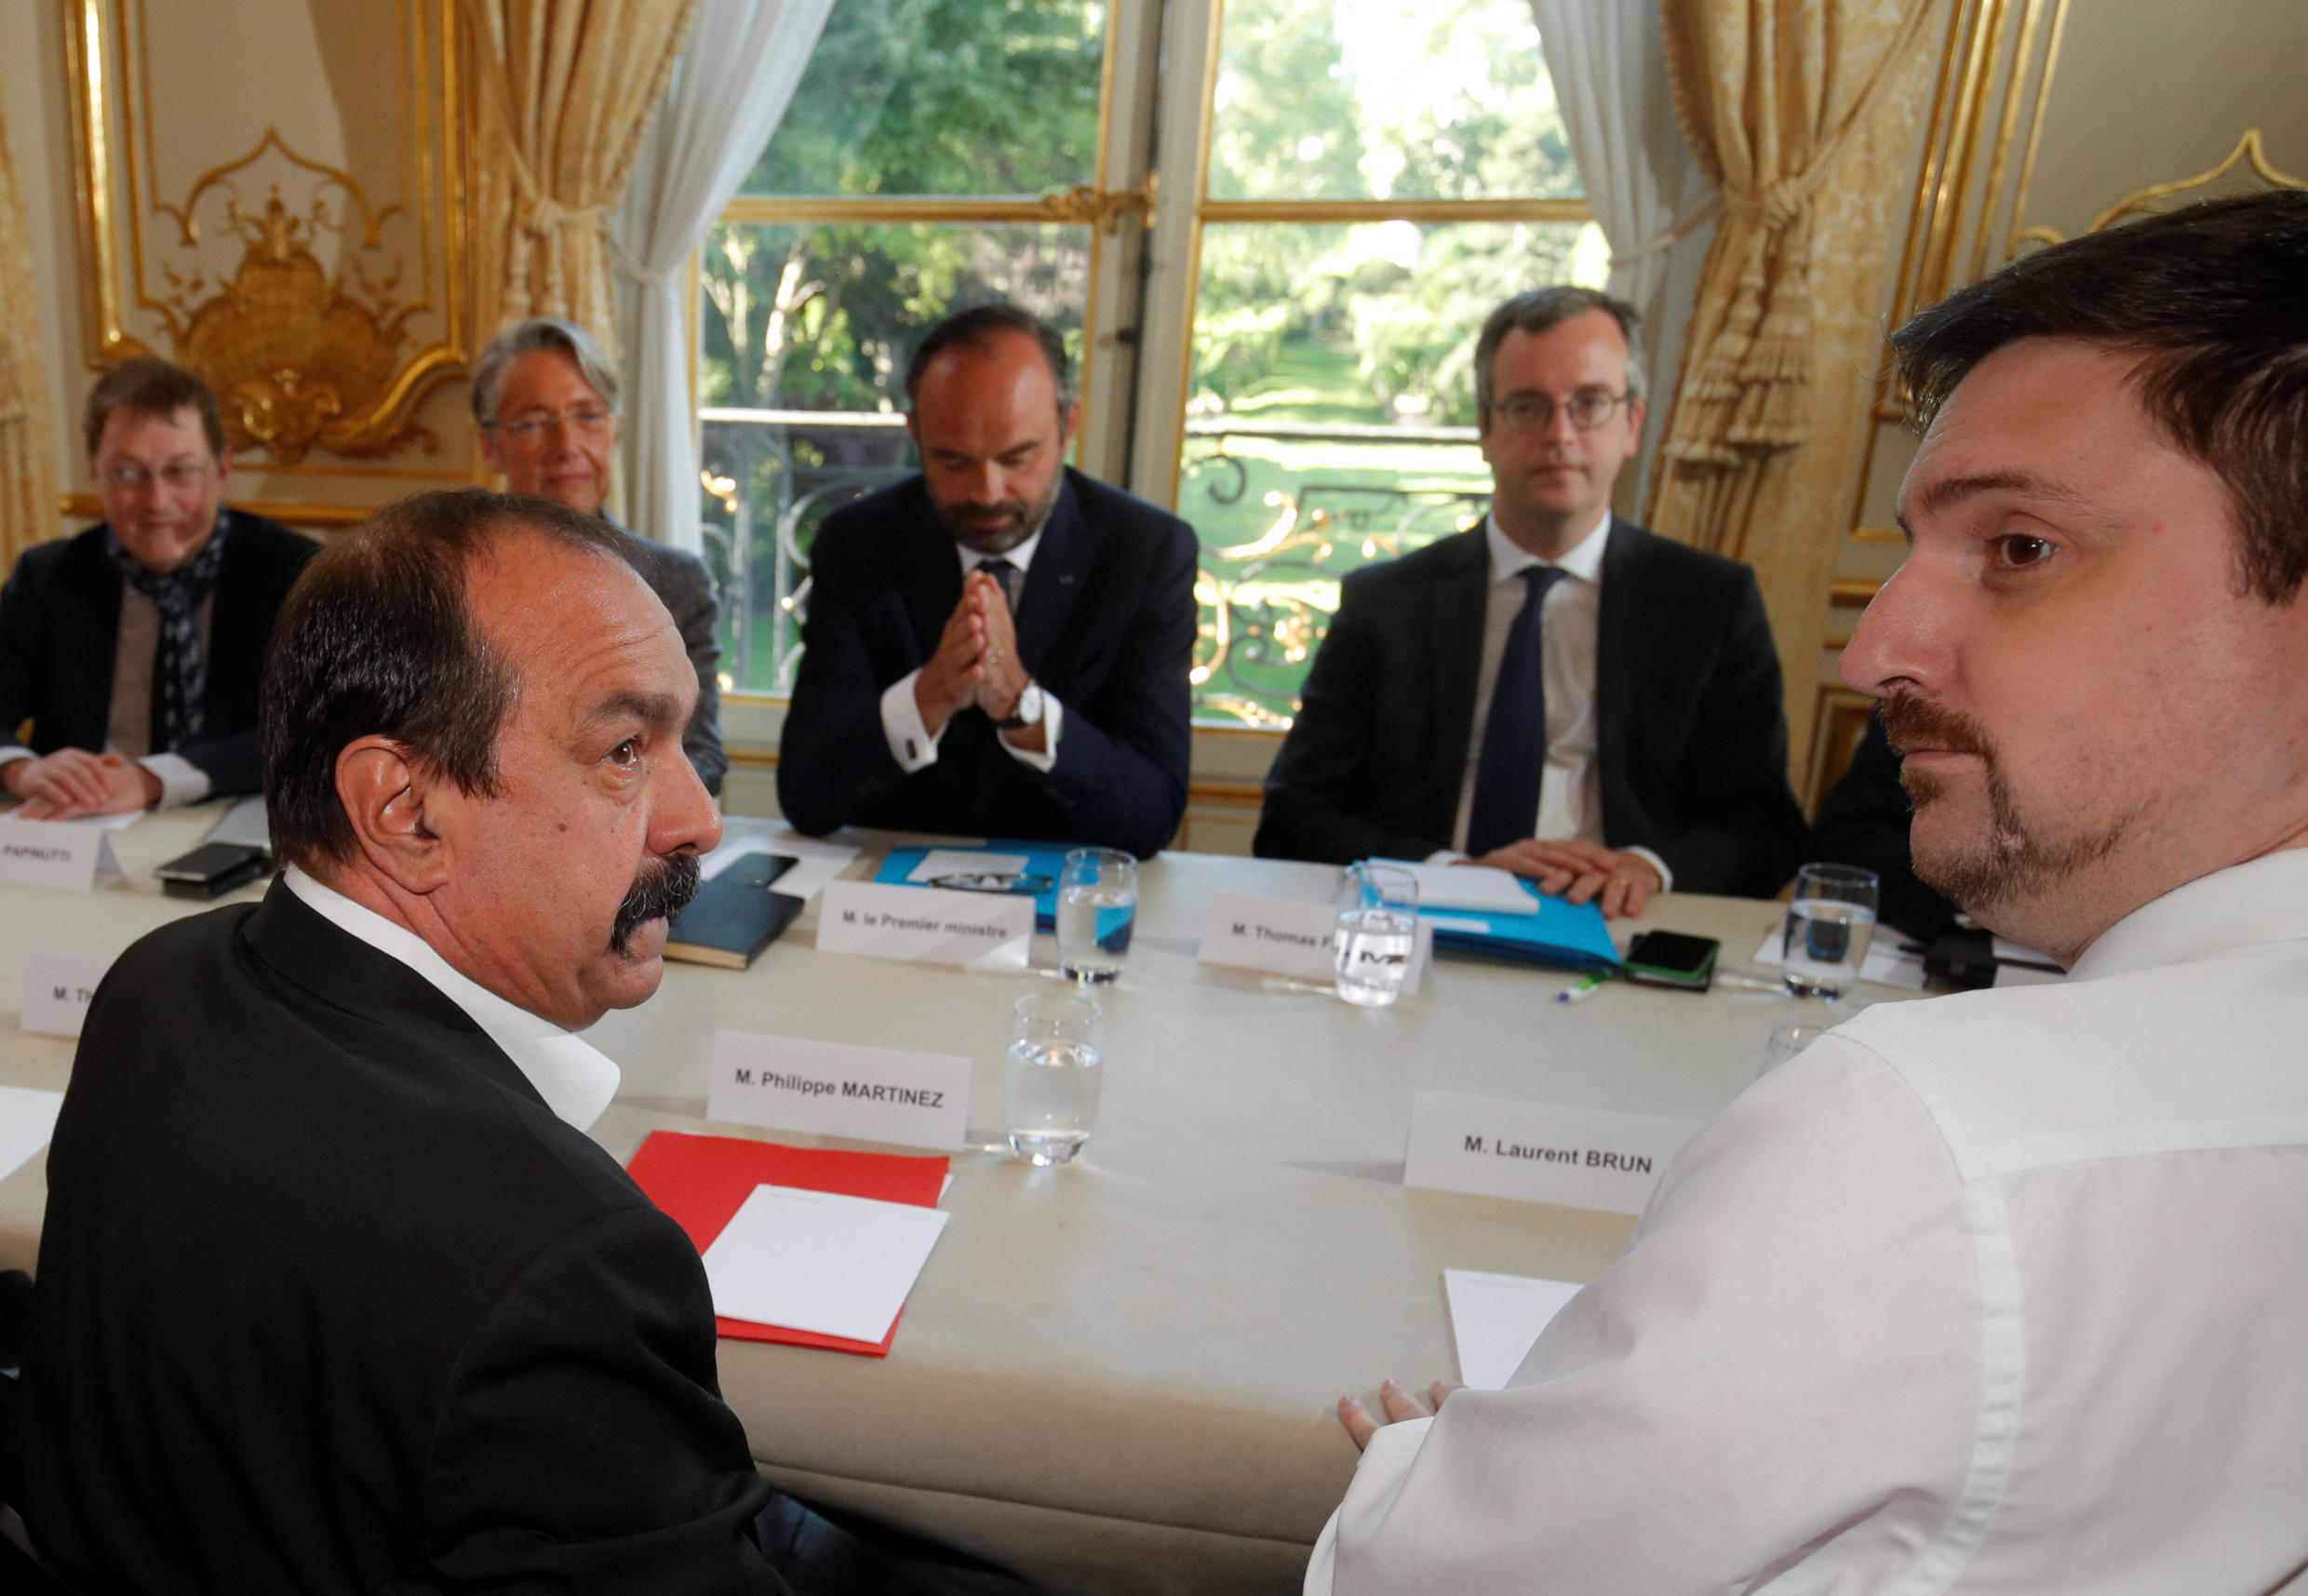 French CGT labour union leader Philippe Martinez (L) and Laurent Brun (R), head of the CGT's railway section, arrive for a meeting with French Prime Minister Edouard Philippe at the Hotel Matignon in Paris, France, May 7, 2018.